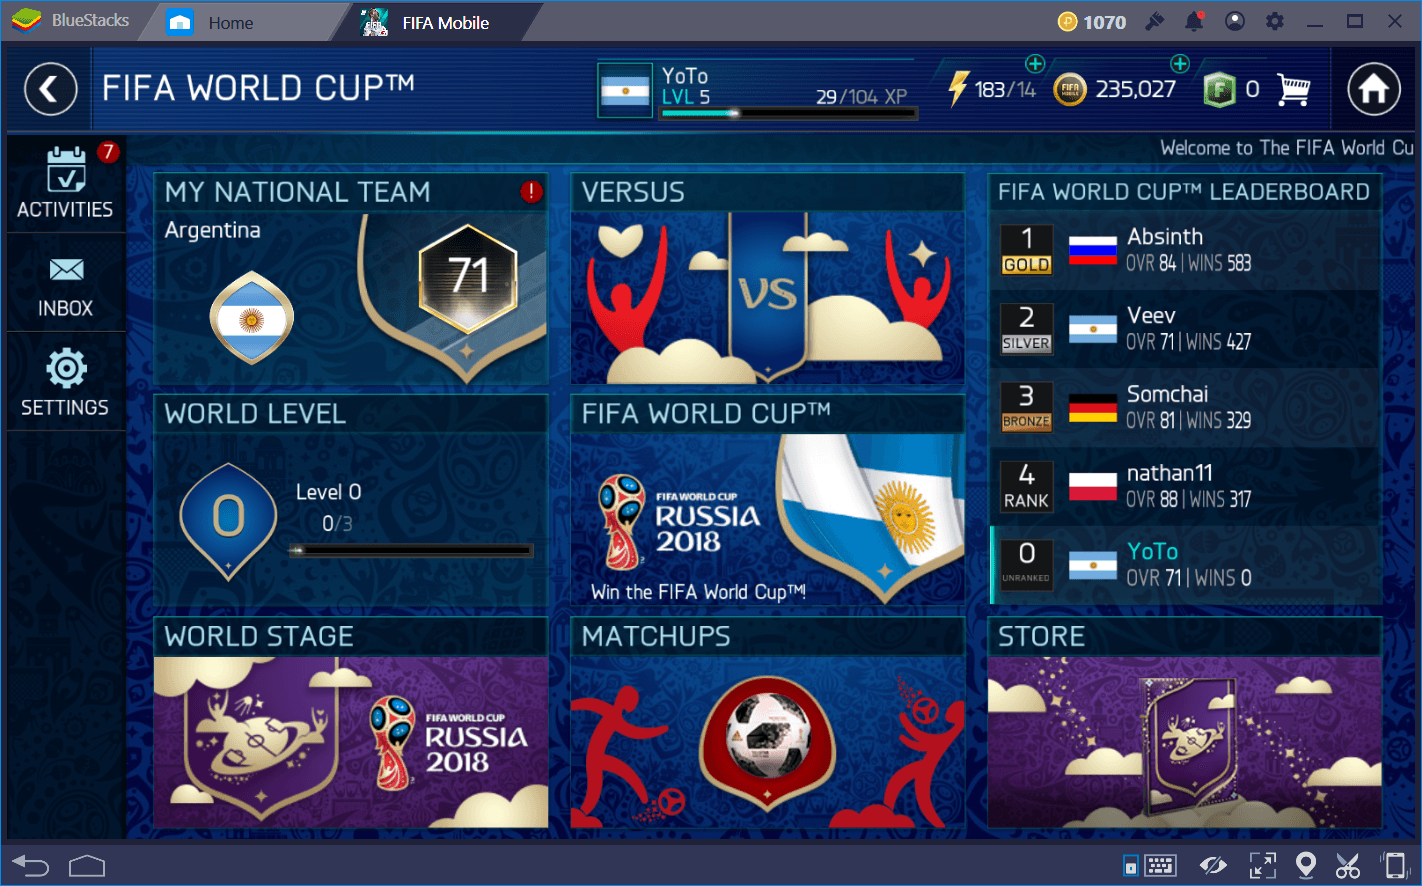 FIFA Soccer: FIFA World Cup (FIFA Mobile) Special World Cup Event Guide